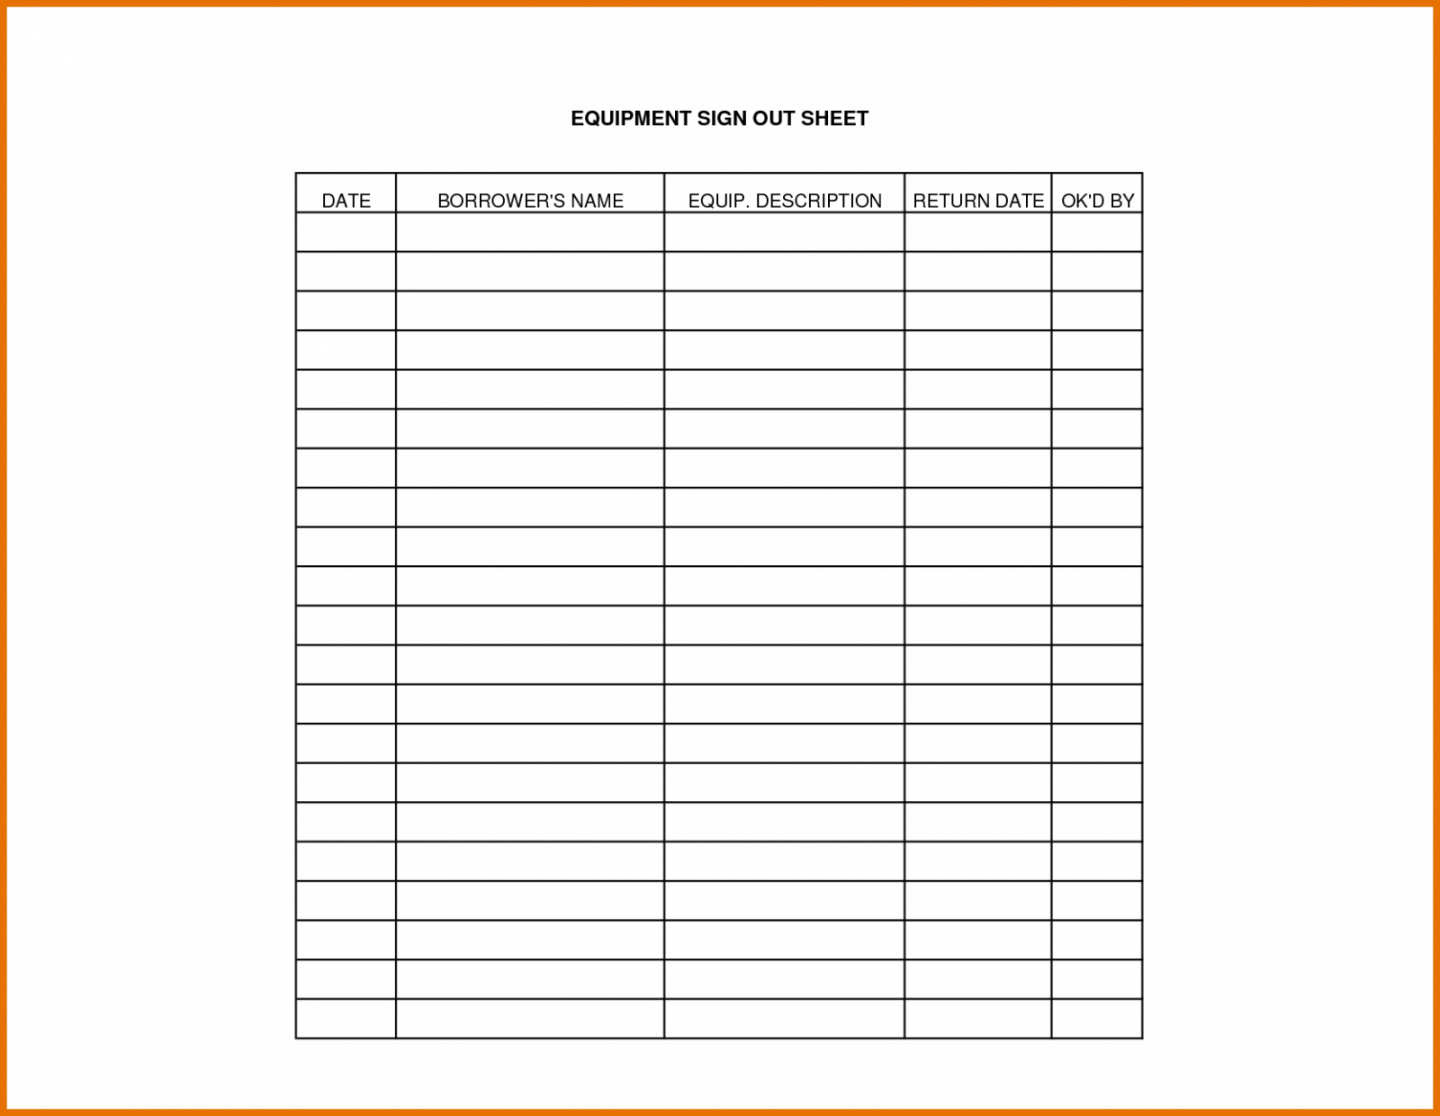 Sign Out Sheet Template For Equipment | Beconchina - Free Printable Sign In And Out Sheets